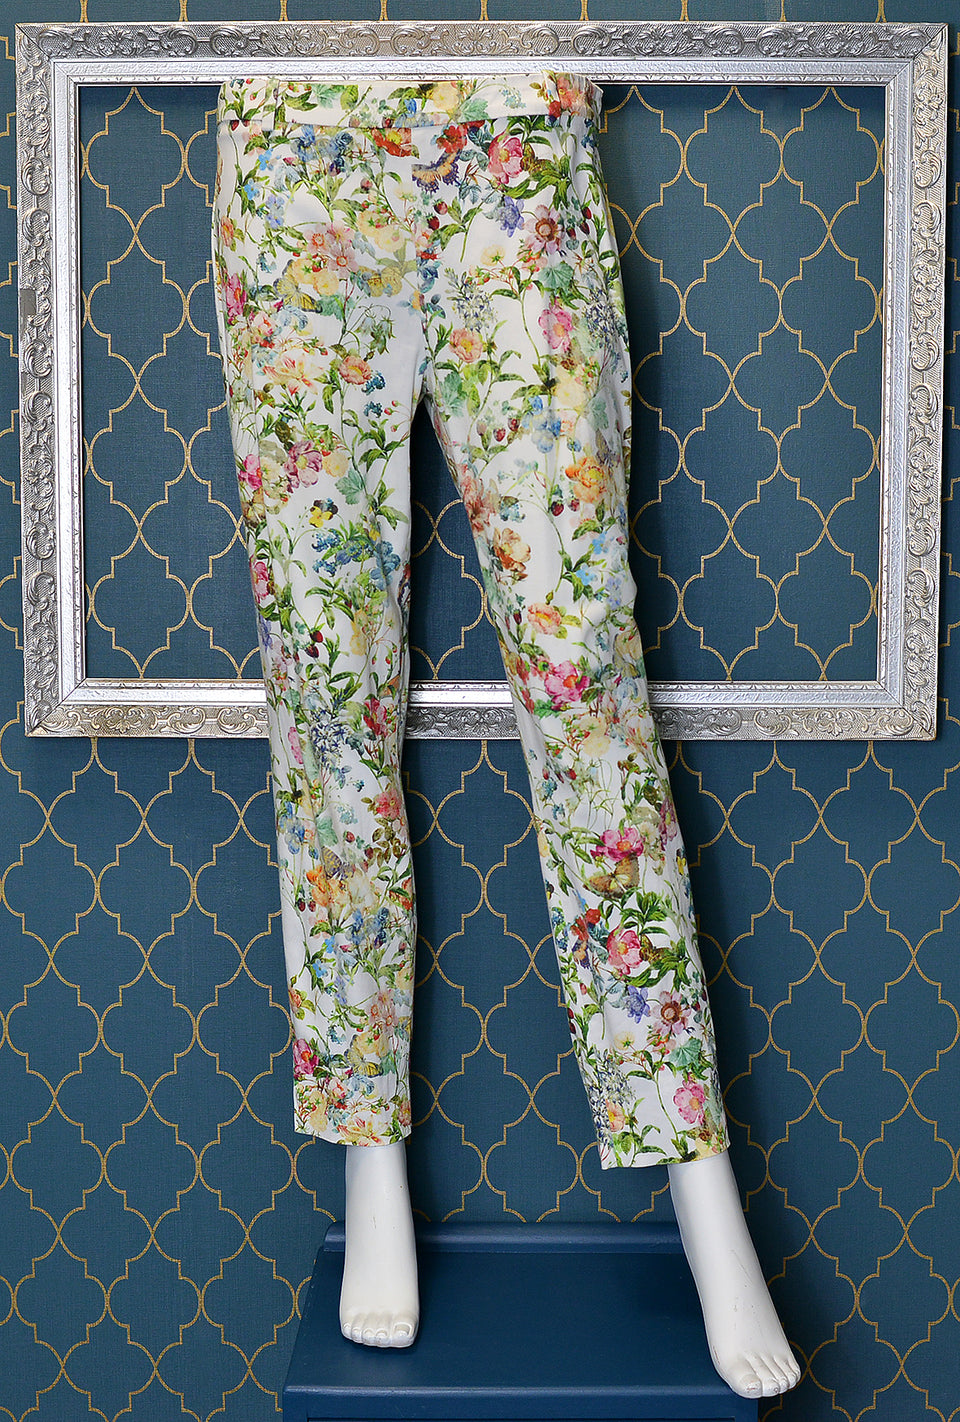 ZARA Women's White & Floral Print Trousers. Size L. Pre-loved.